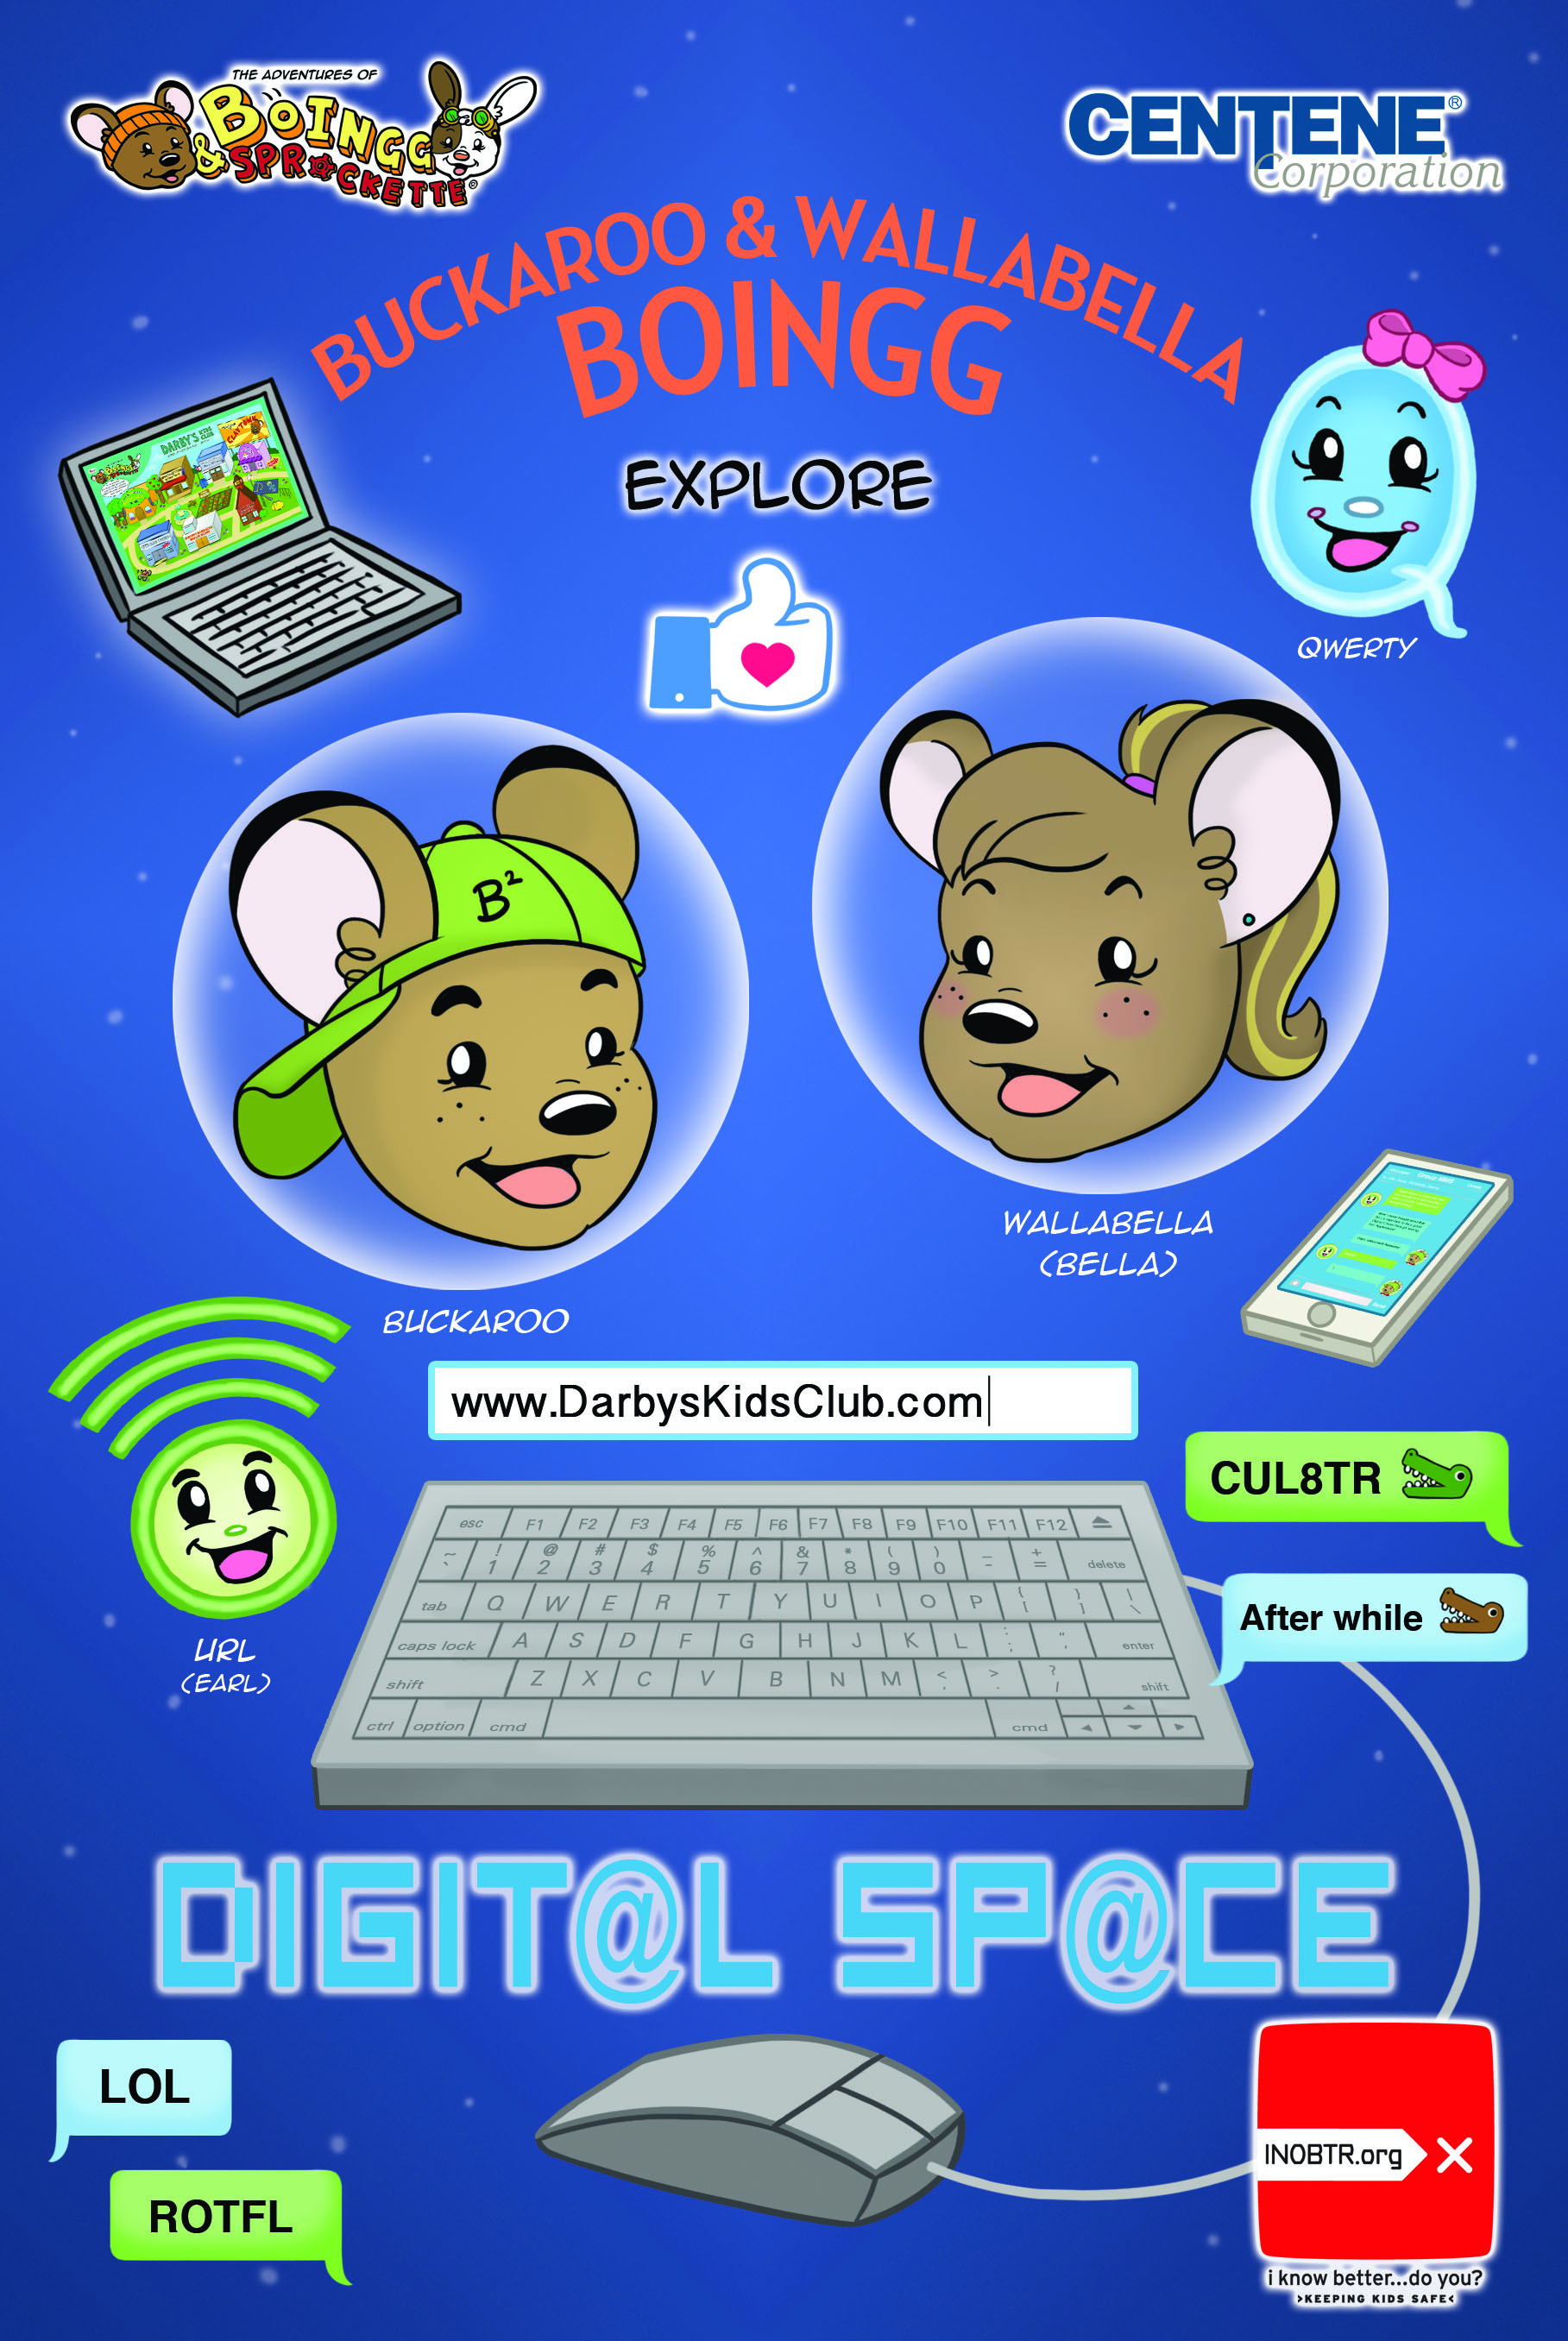 The Adventures of BoIngg & Sprockette: BUCKAROO & WALLABELLA BOINGG EXPLORE DIGIT@L SP@CE